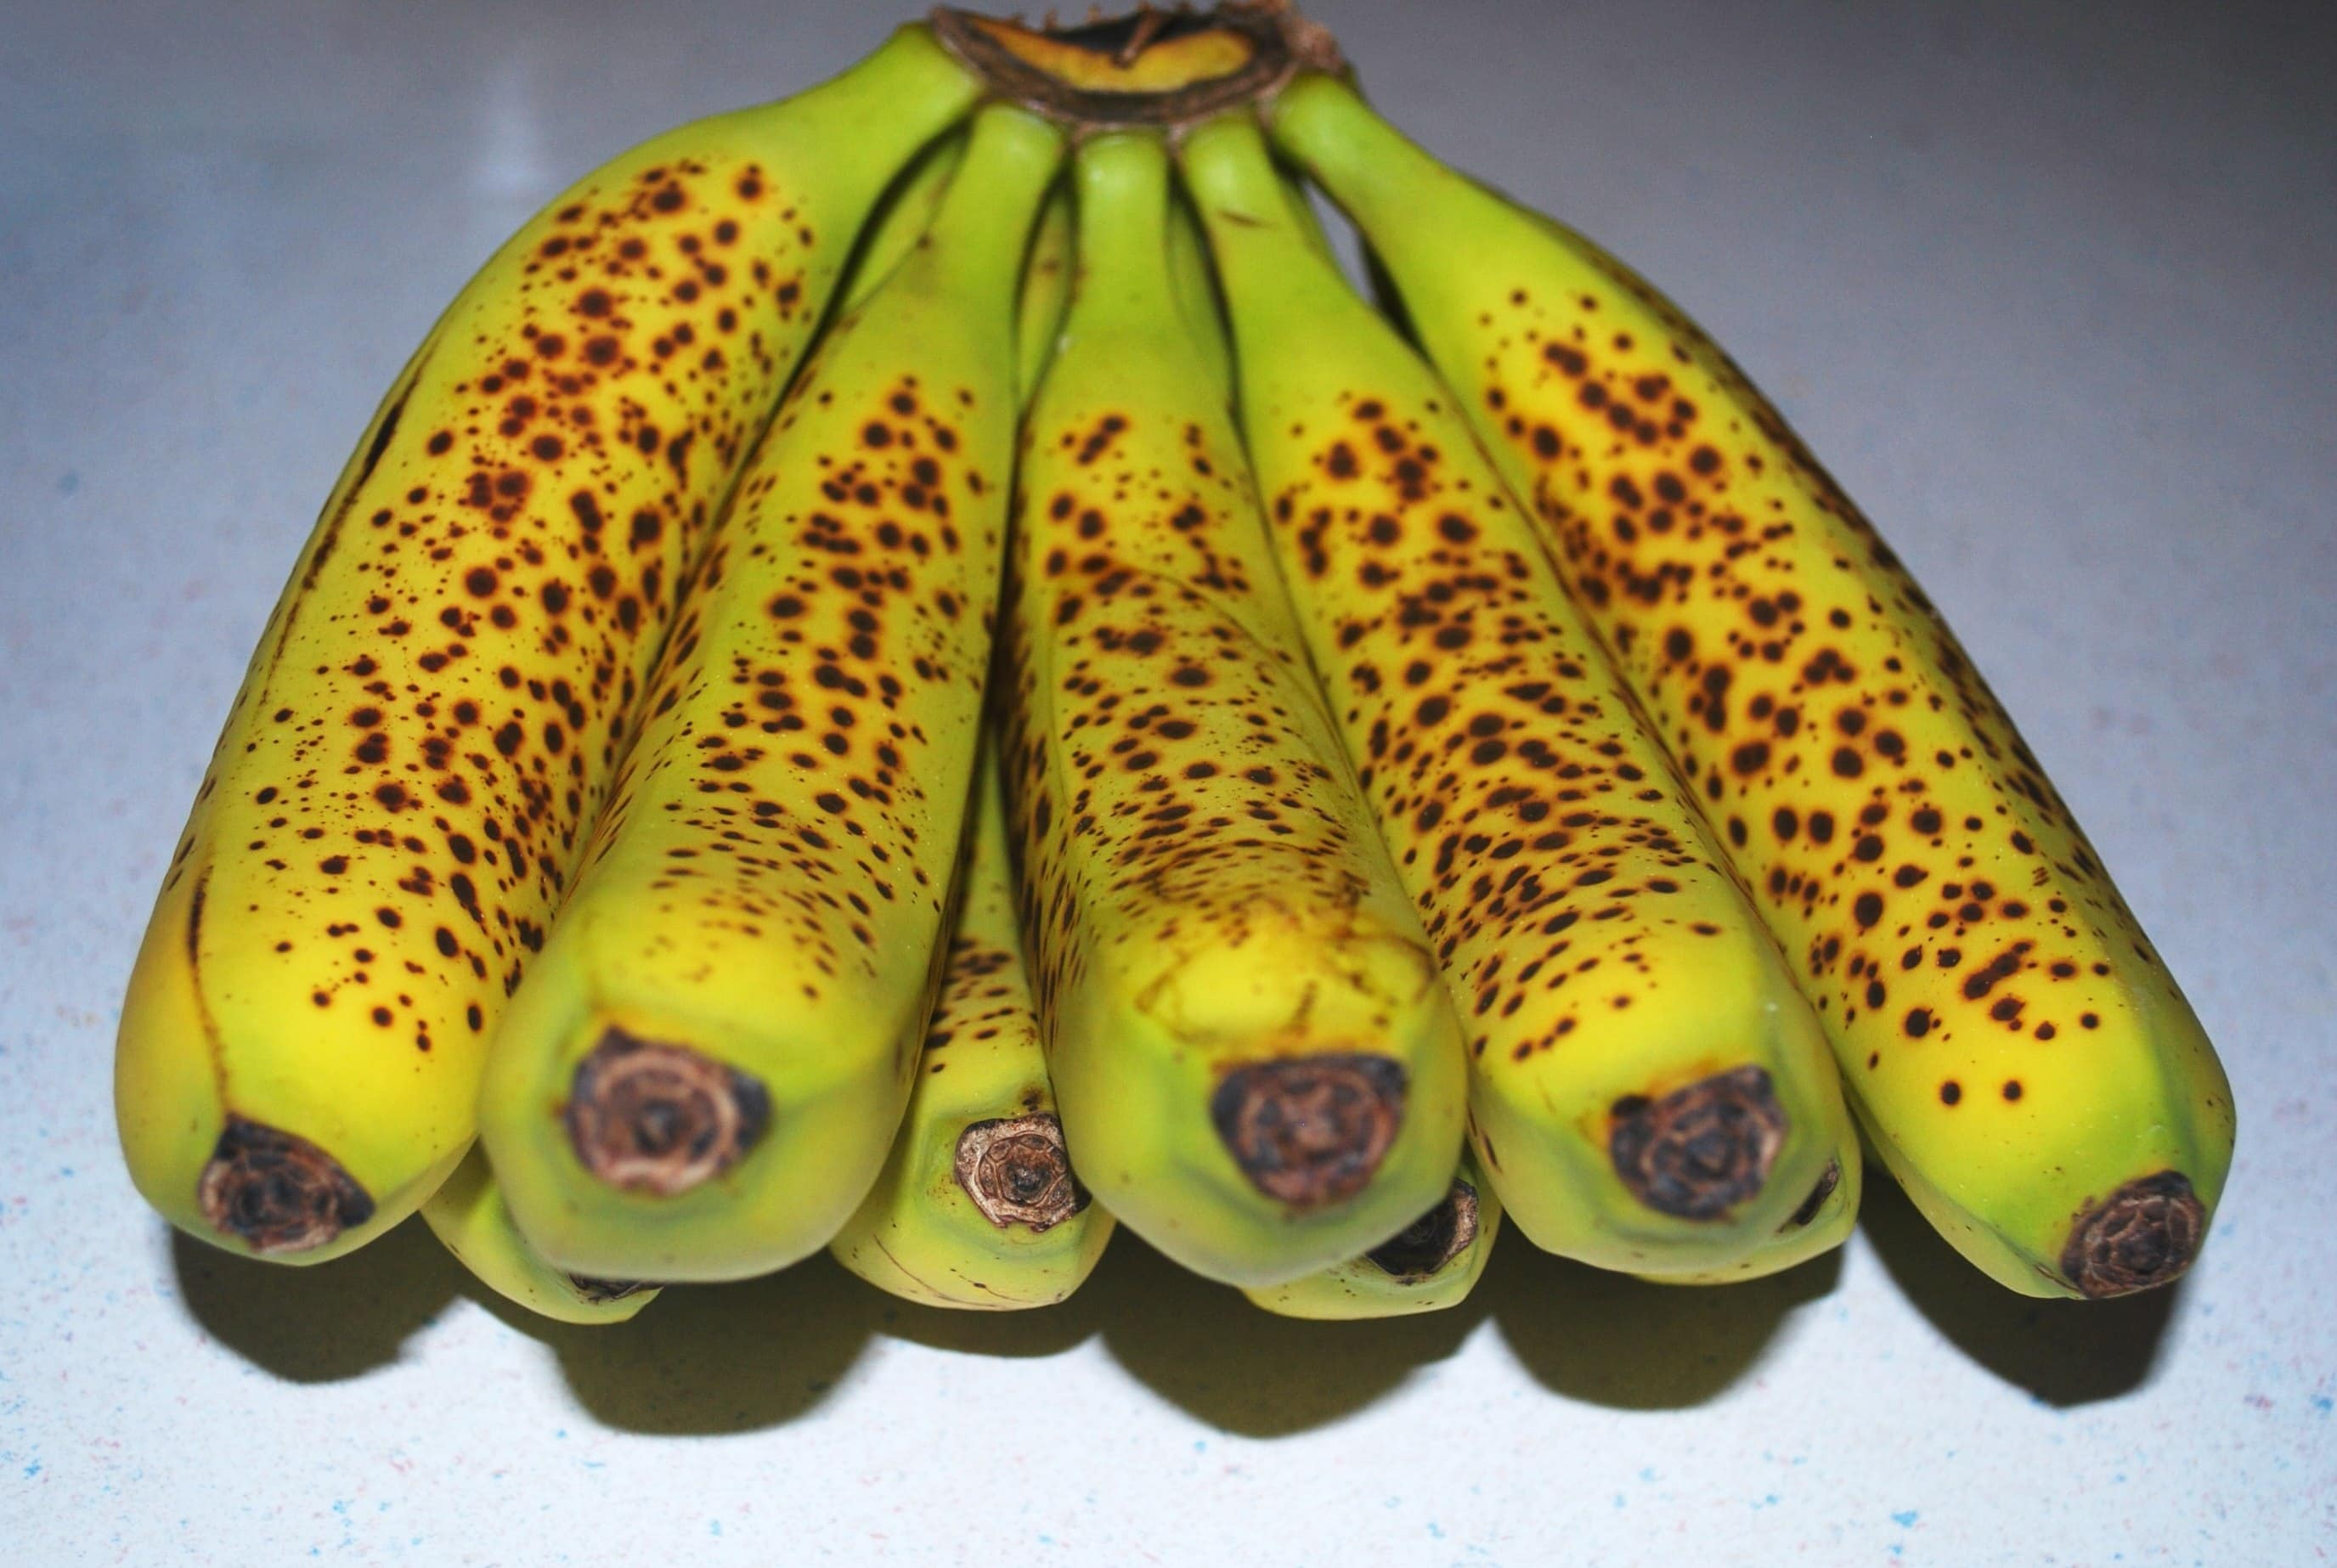 fruit, yellow banana, food, indoor, meal, summer season, meal, vitamin, organic